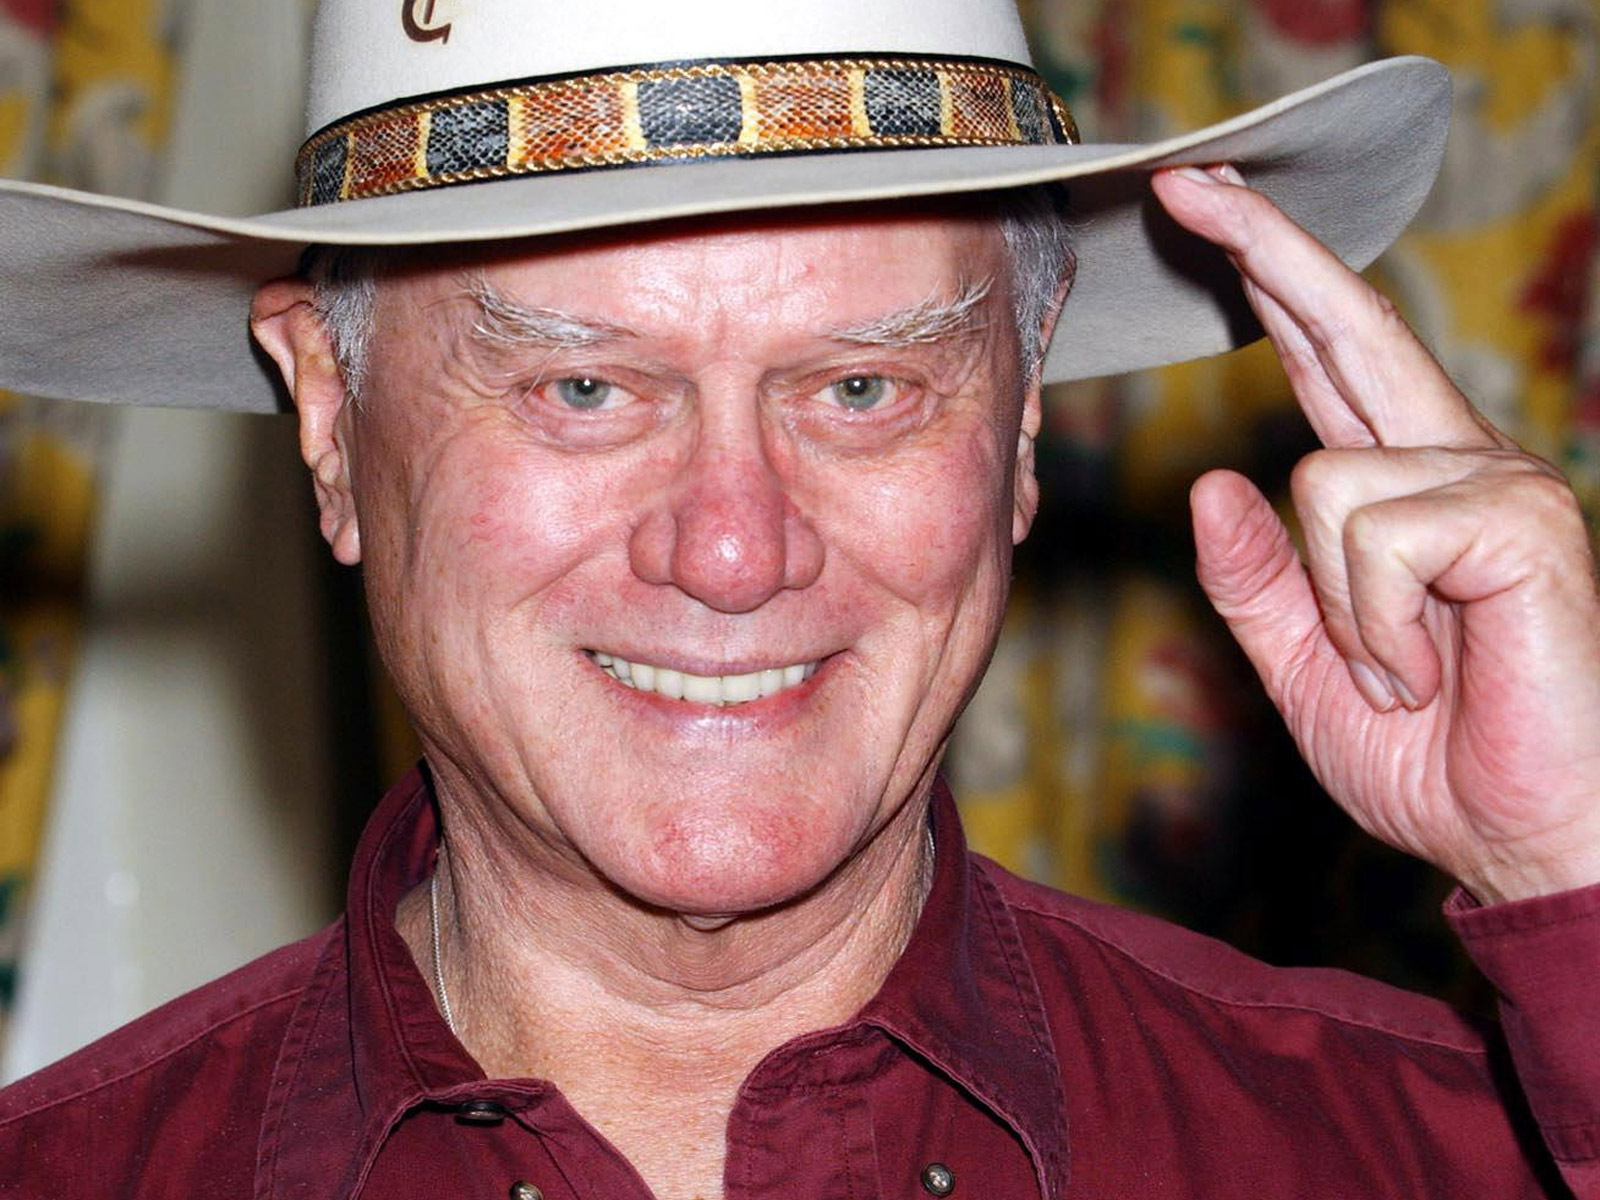 Free Larry Hagman, computer desktop wallpapers, pictures, images